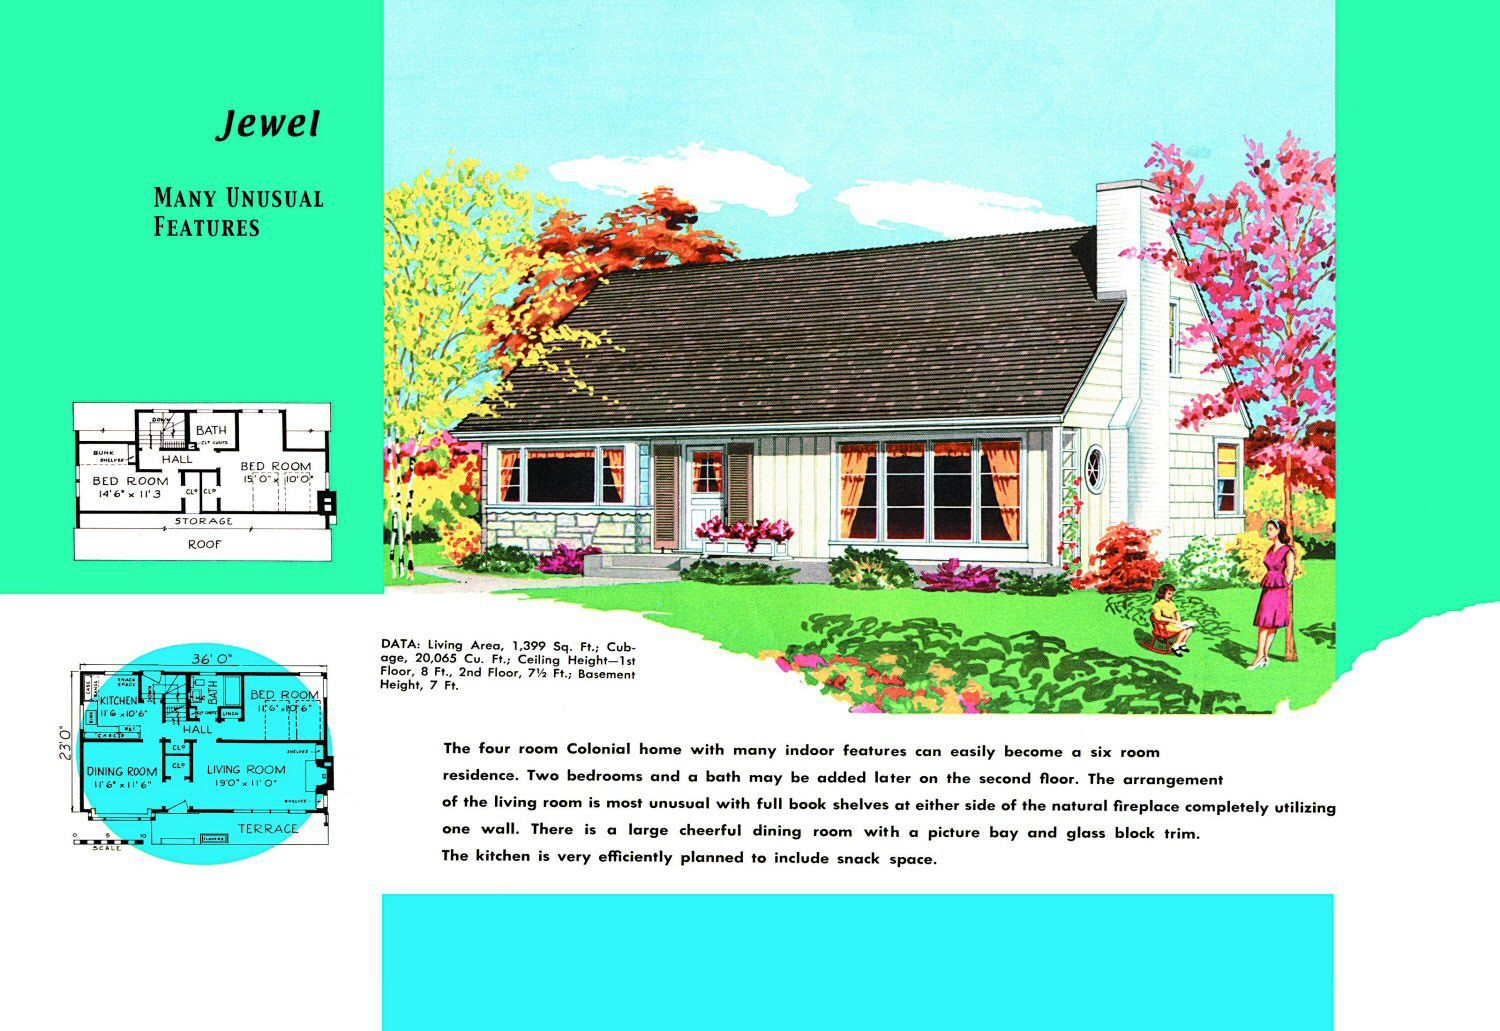 These Are Cape Cod House Plans Sold To Mid Century Americans Cape Cod House Plans Cape Cod House House Plans With Photos